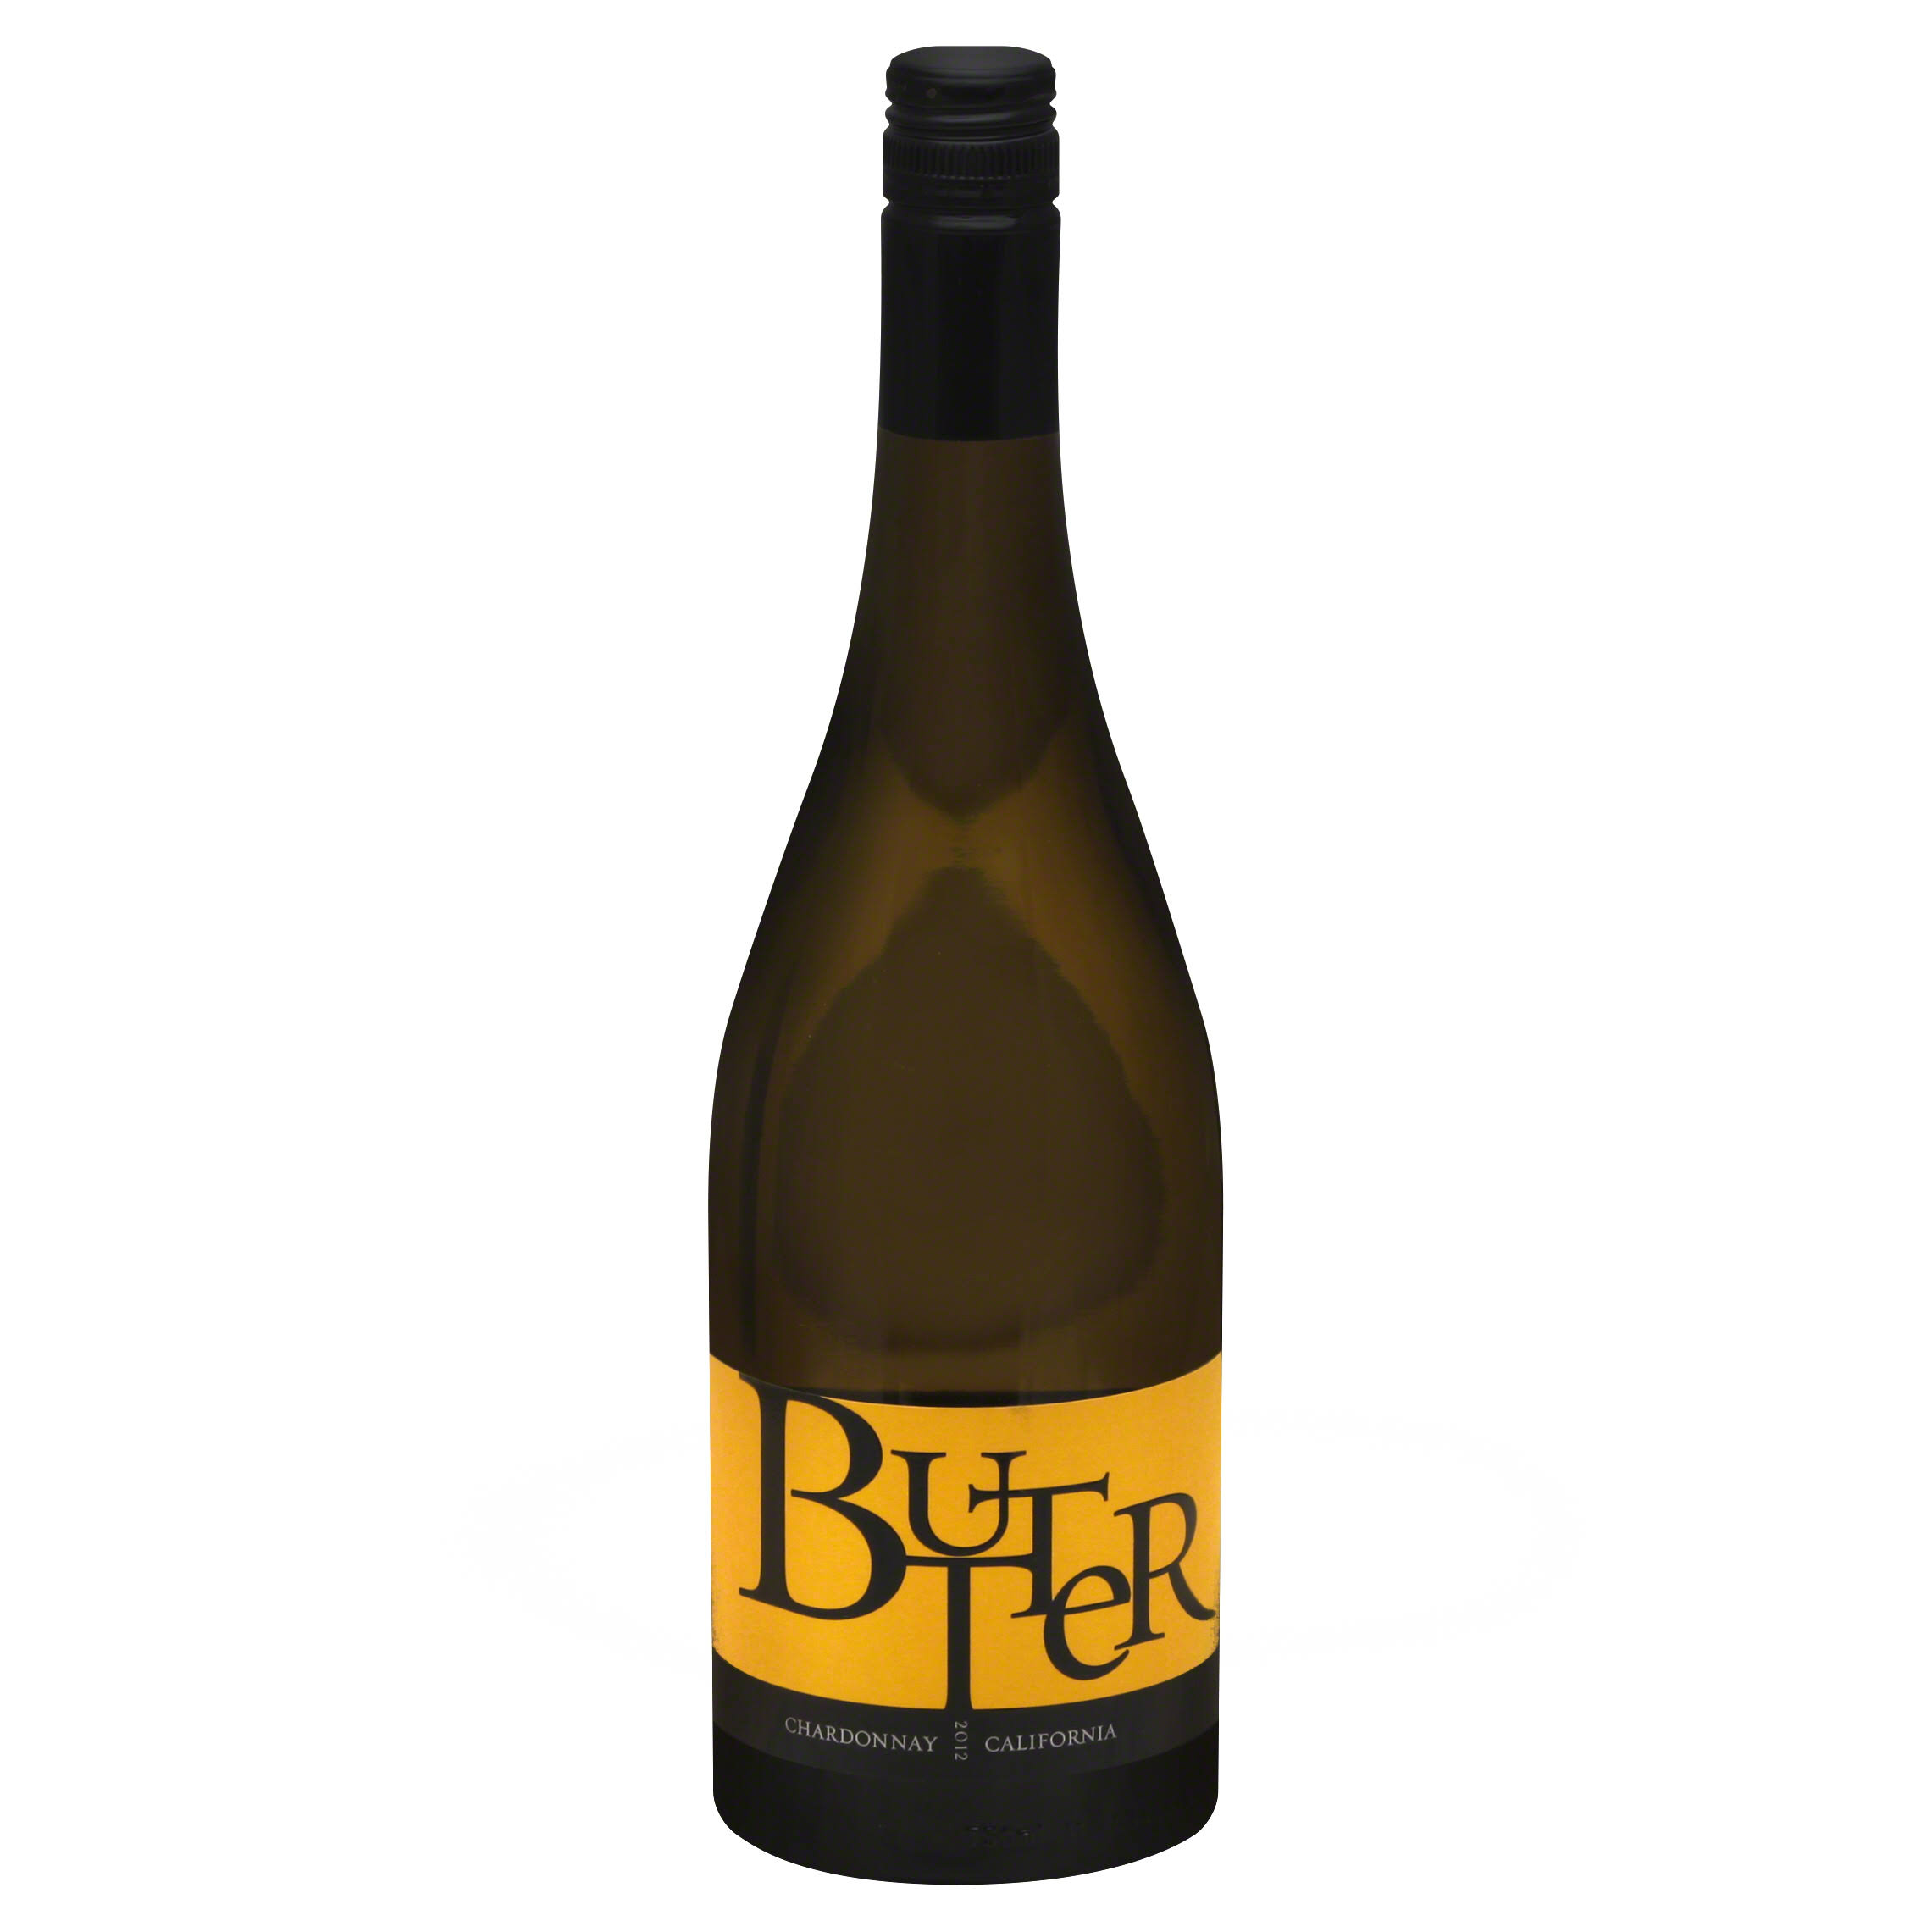 Butter Chardonnay, 2012 - 750 ml